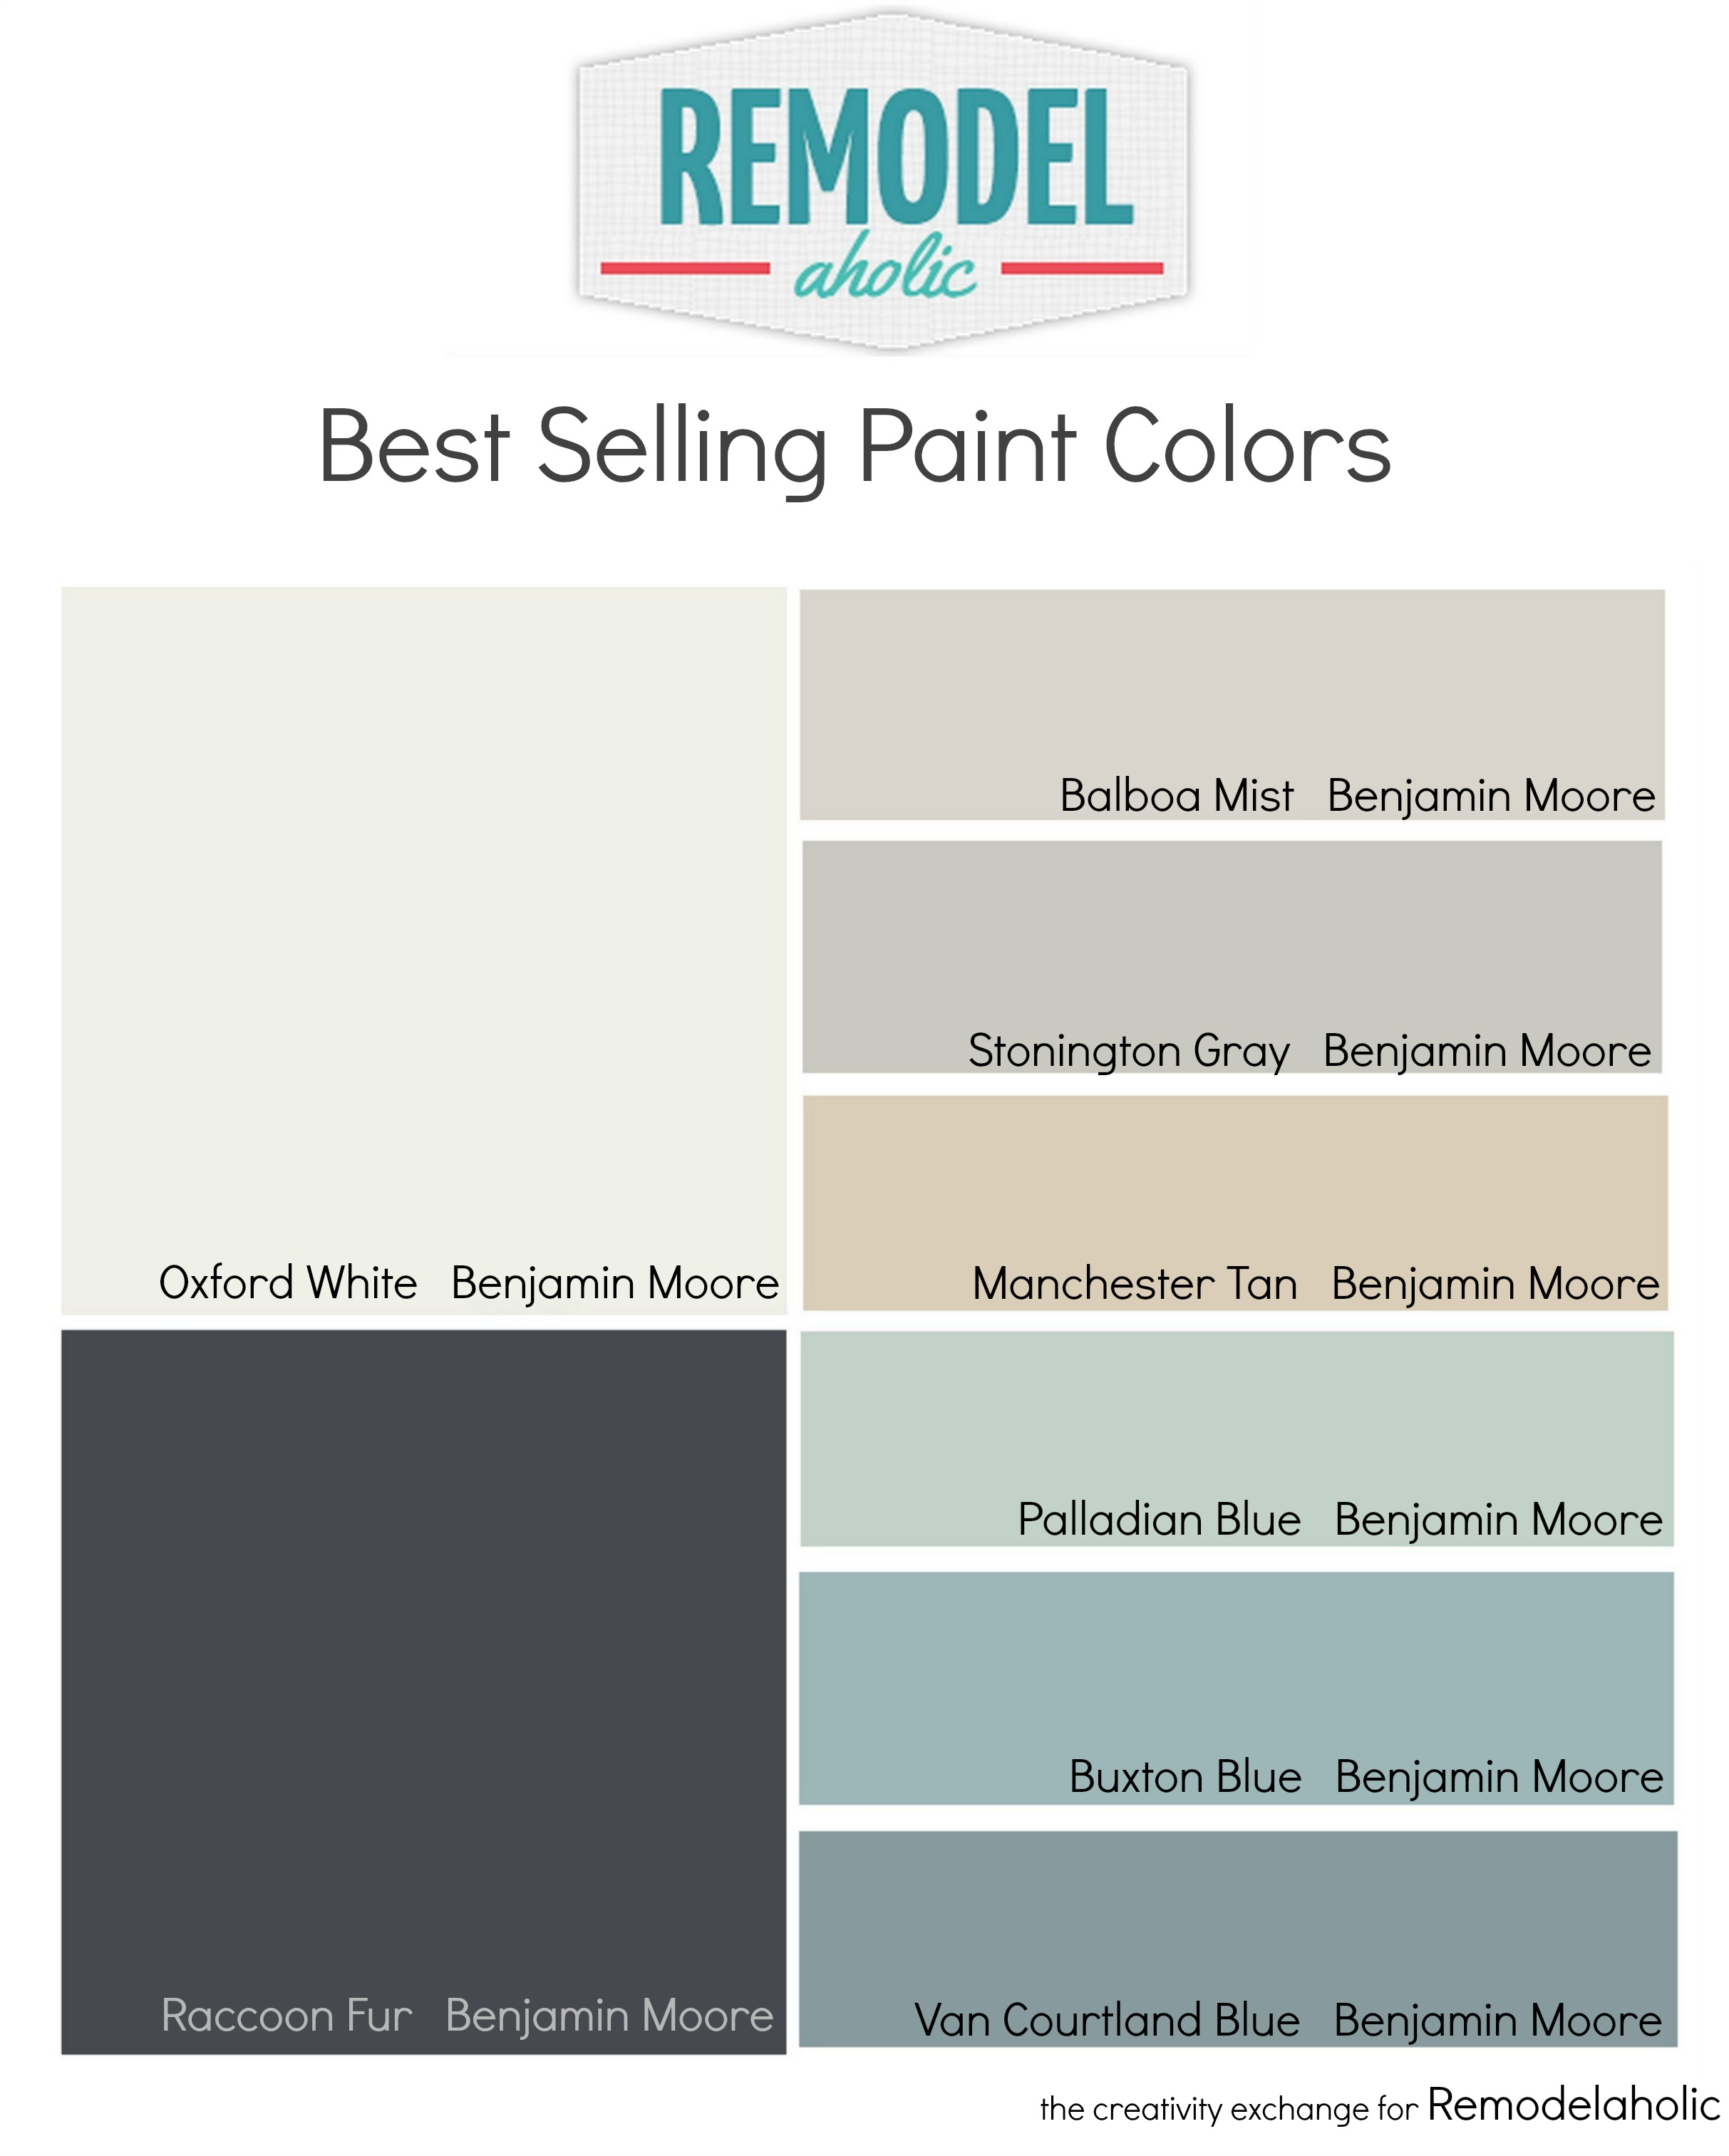 Remodelaholic Most Popular And Best Selling Paint Colors